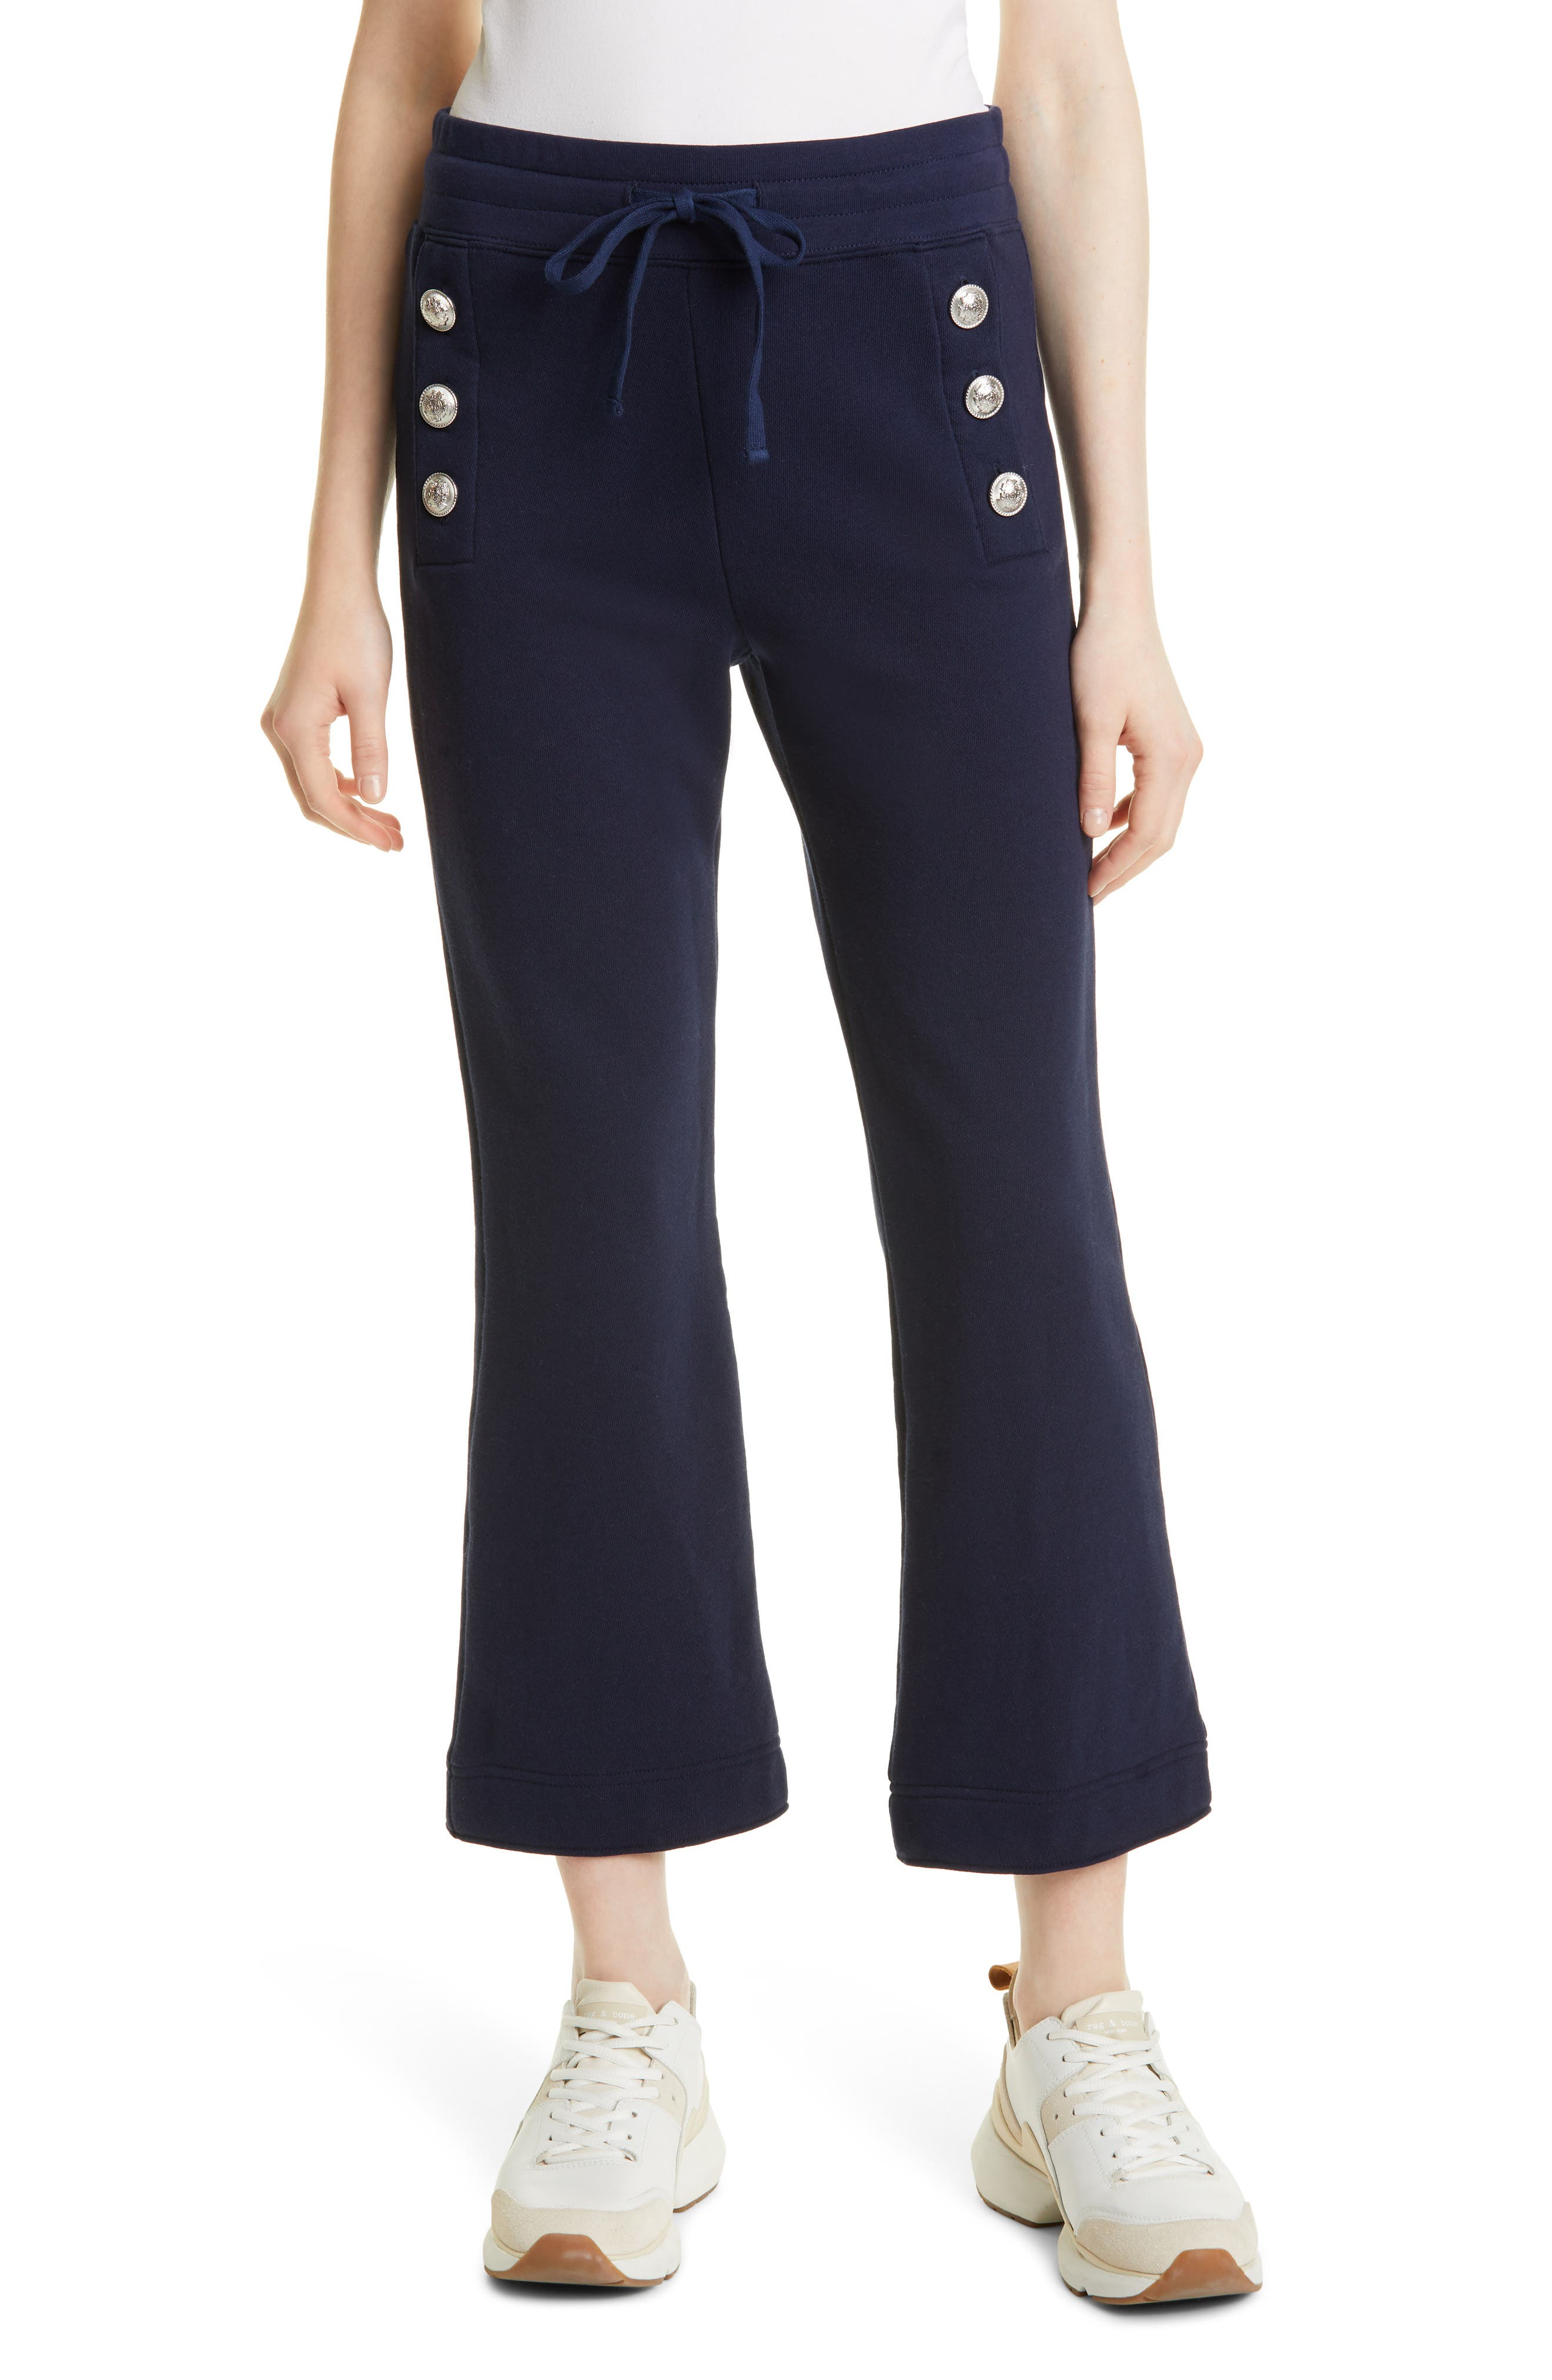 Sian Crop Flare Cotton Joggers